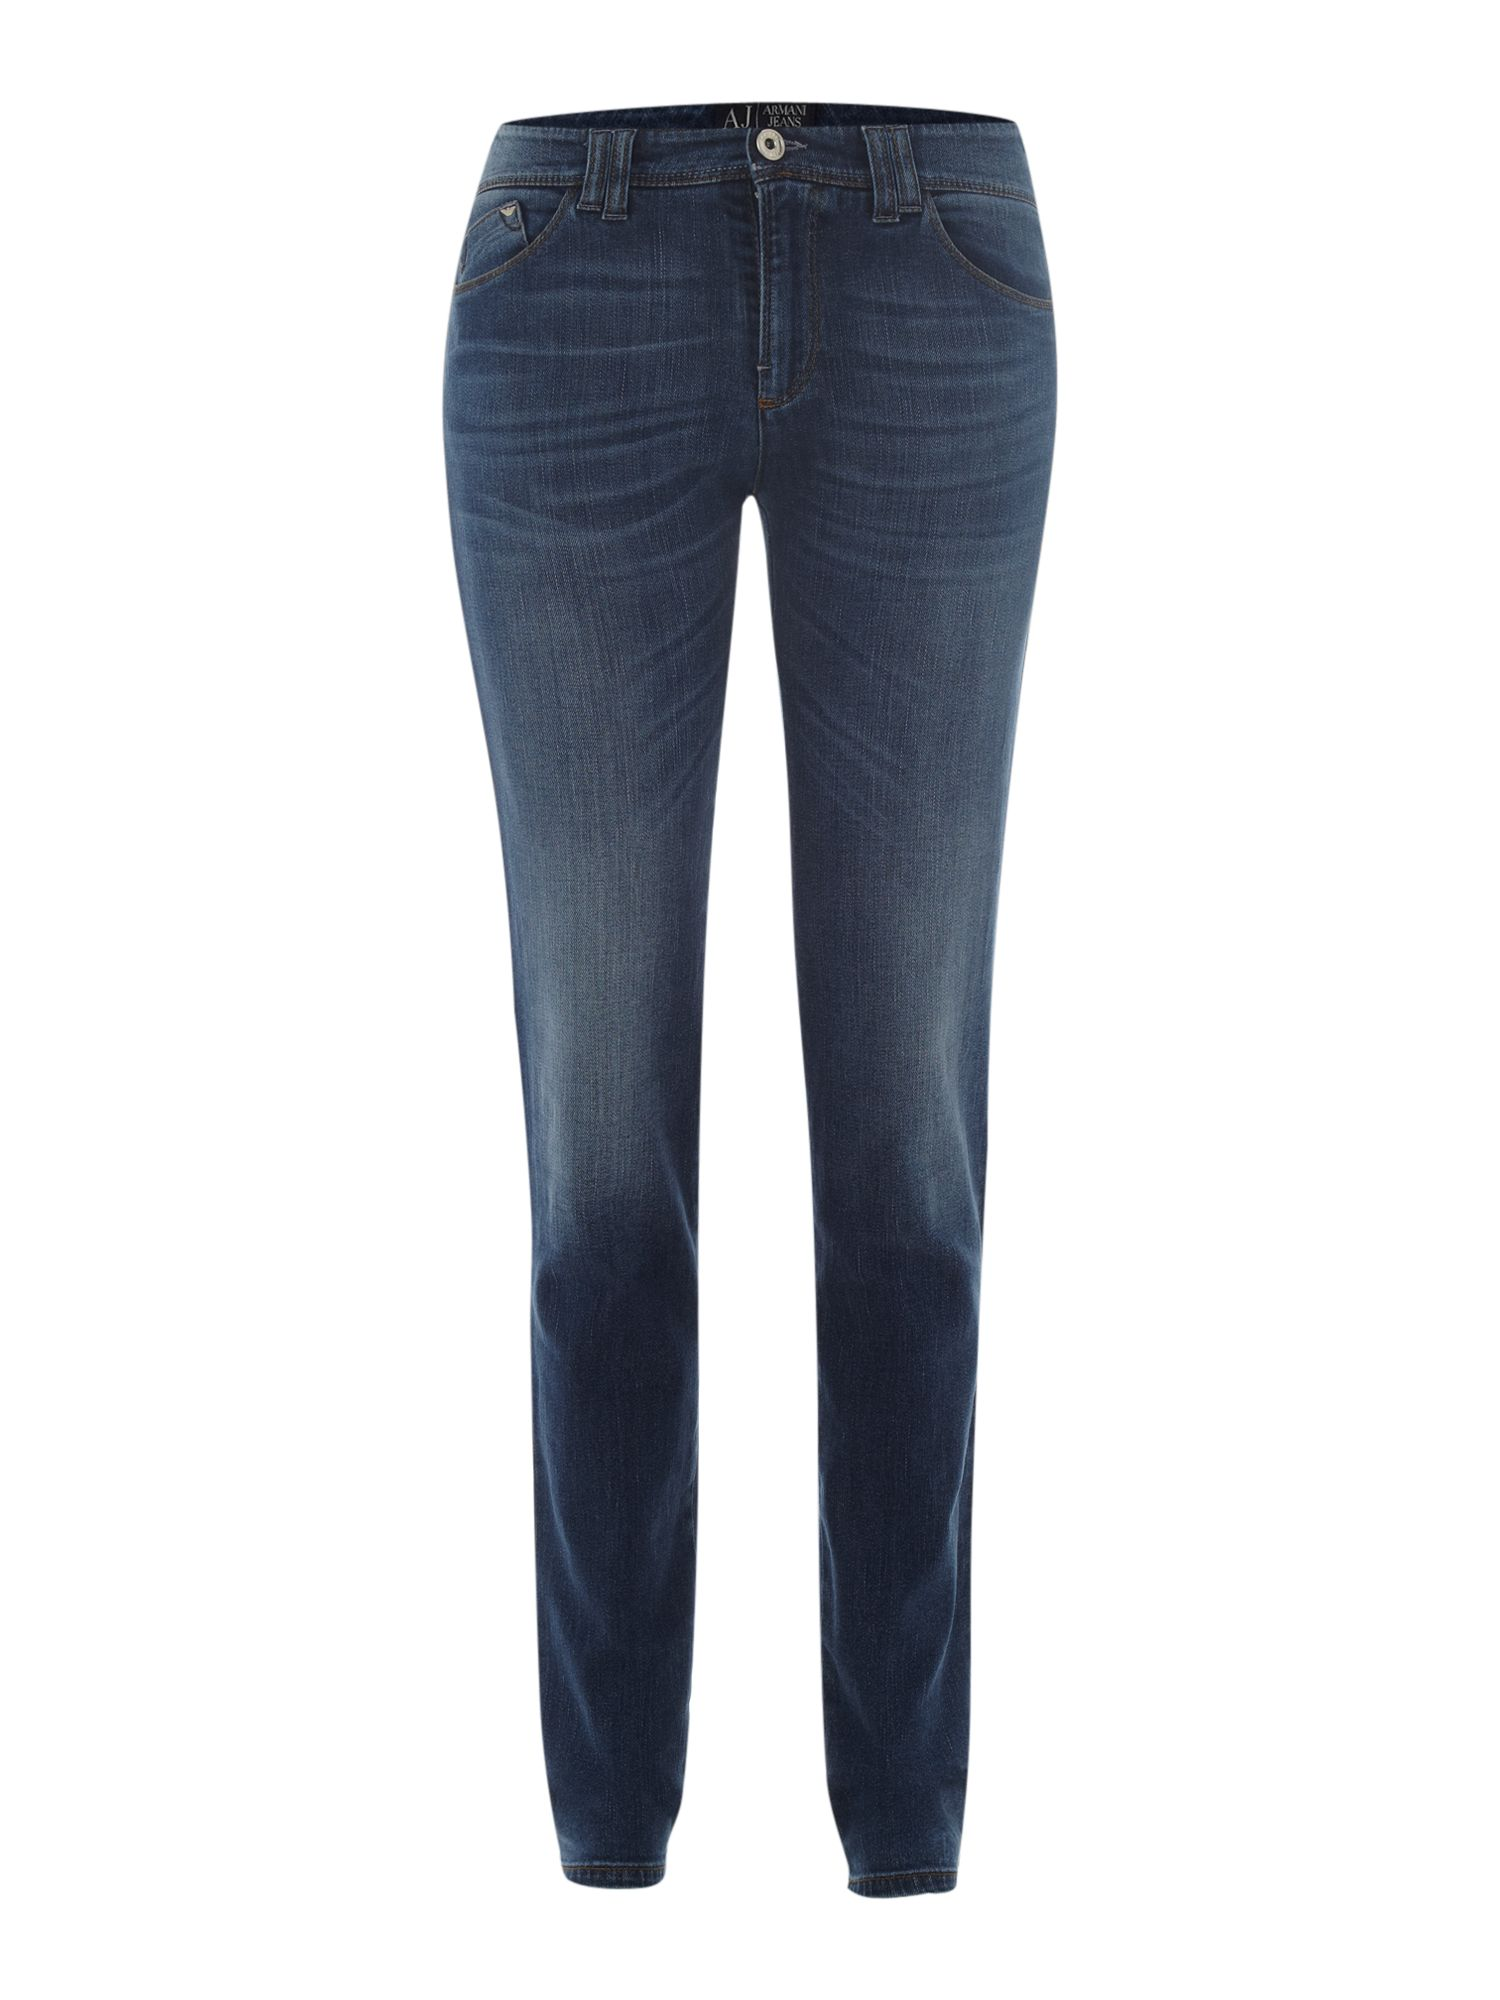 J28 mid-rise skinny jeans with diamante pockets